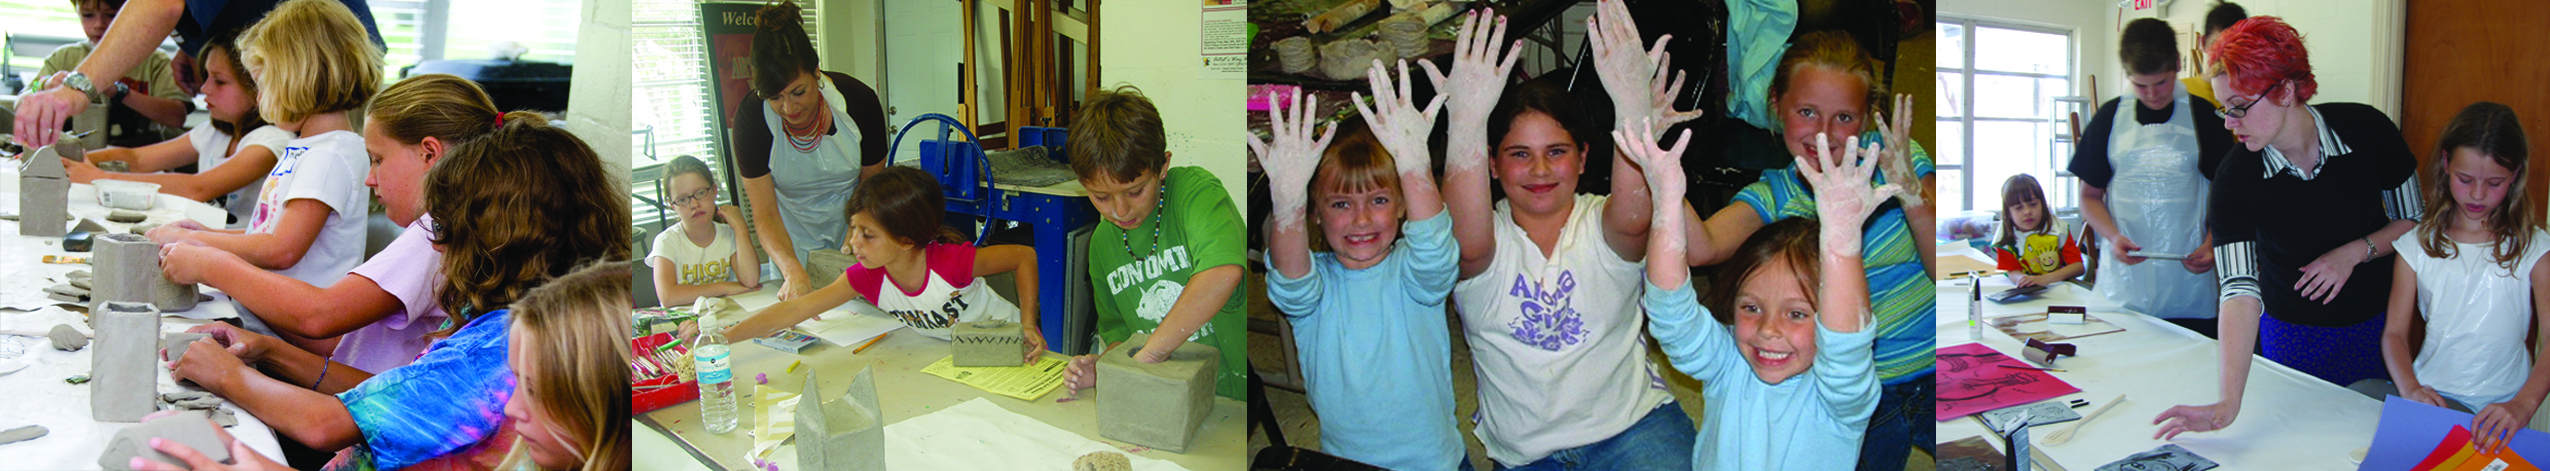 4-photo collage of kids making pottery in the Art House classroom